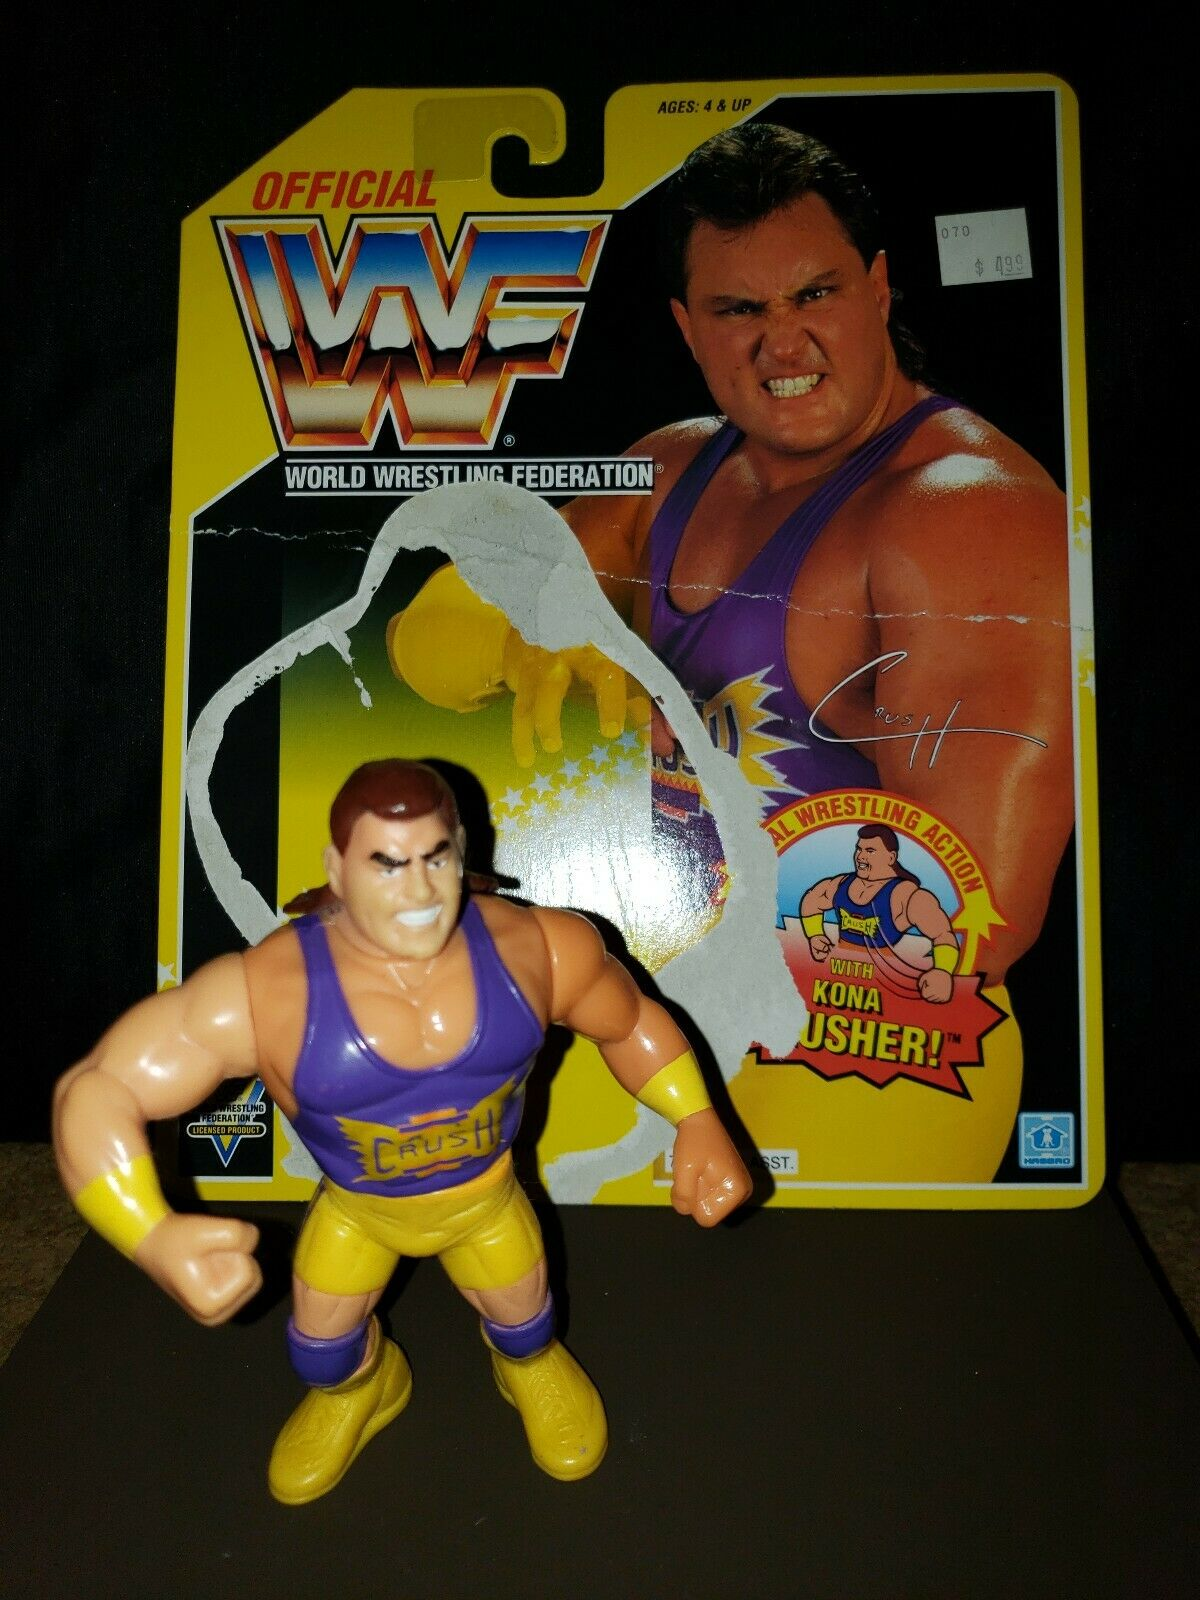 WWF Hasbro Crush 1993 Yellow Card Series 7 Vintage WWE Figure with backer